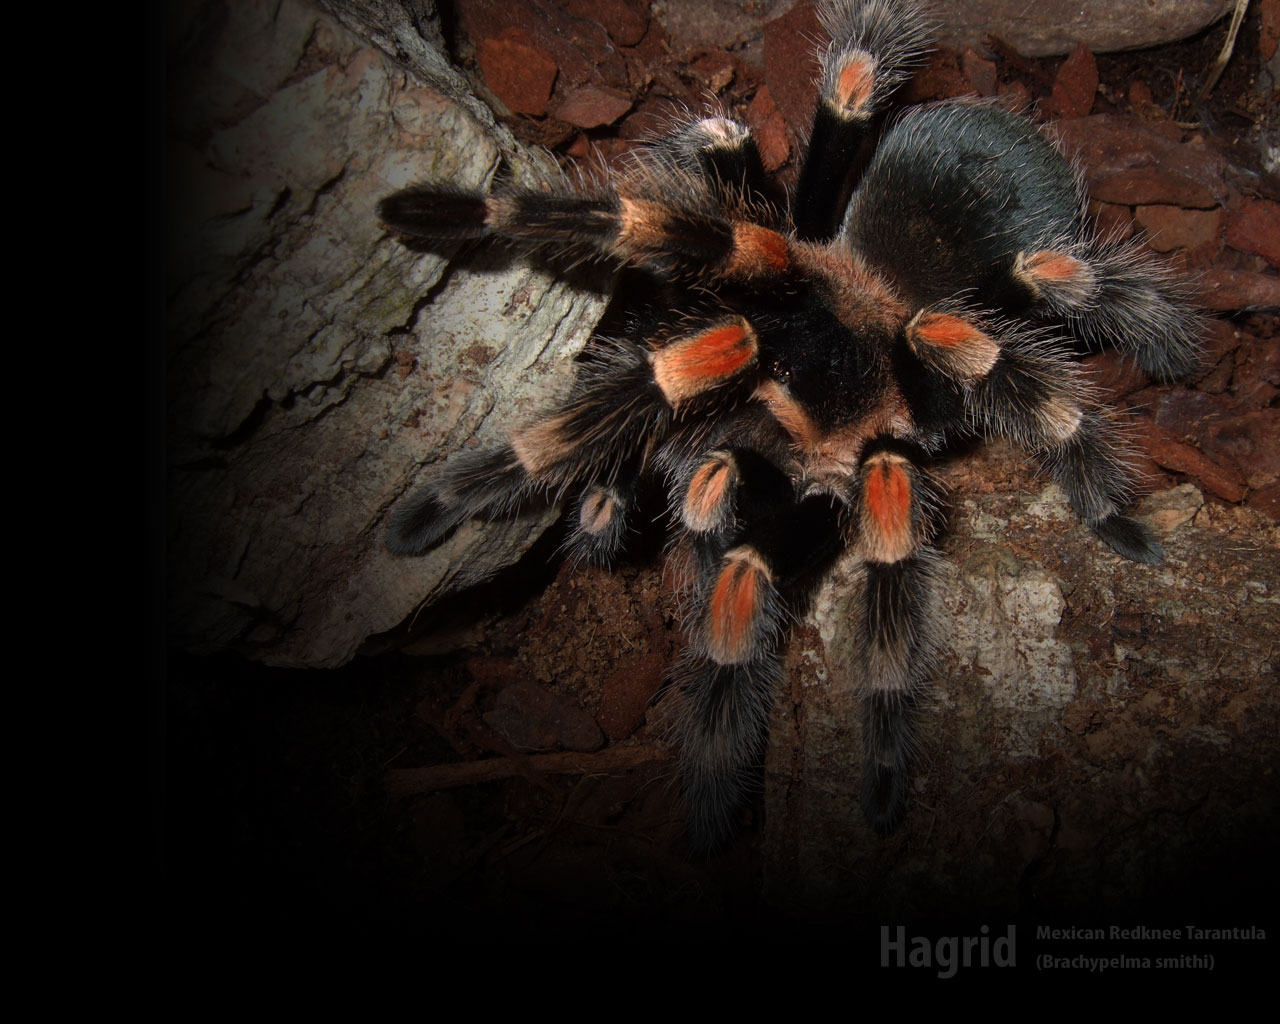 Mexican Red Knee by rdl1